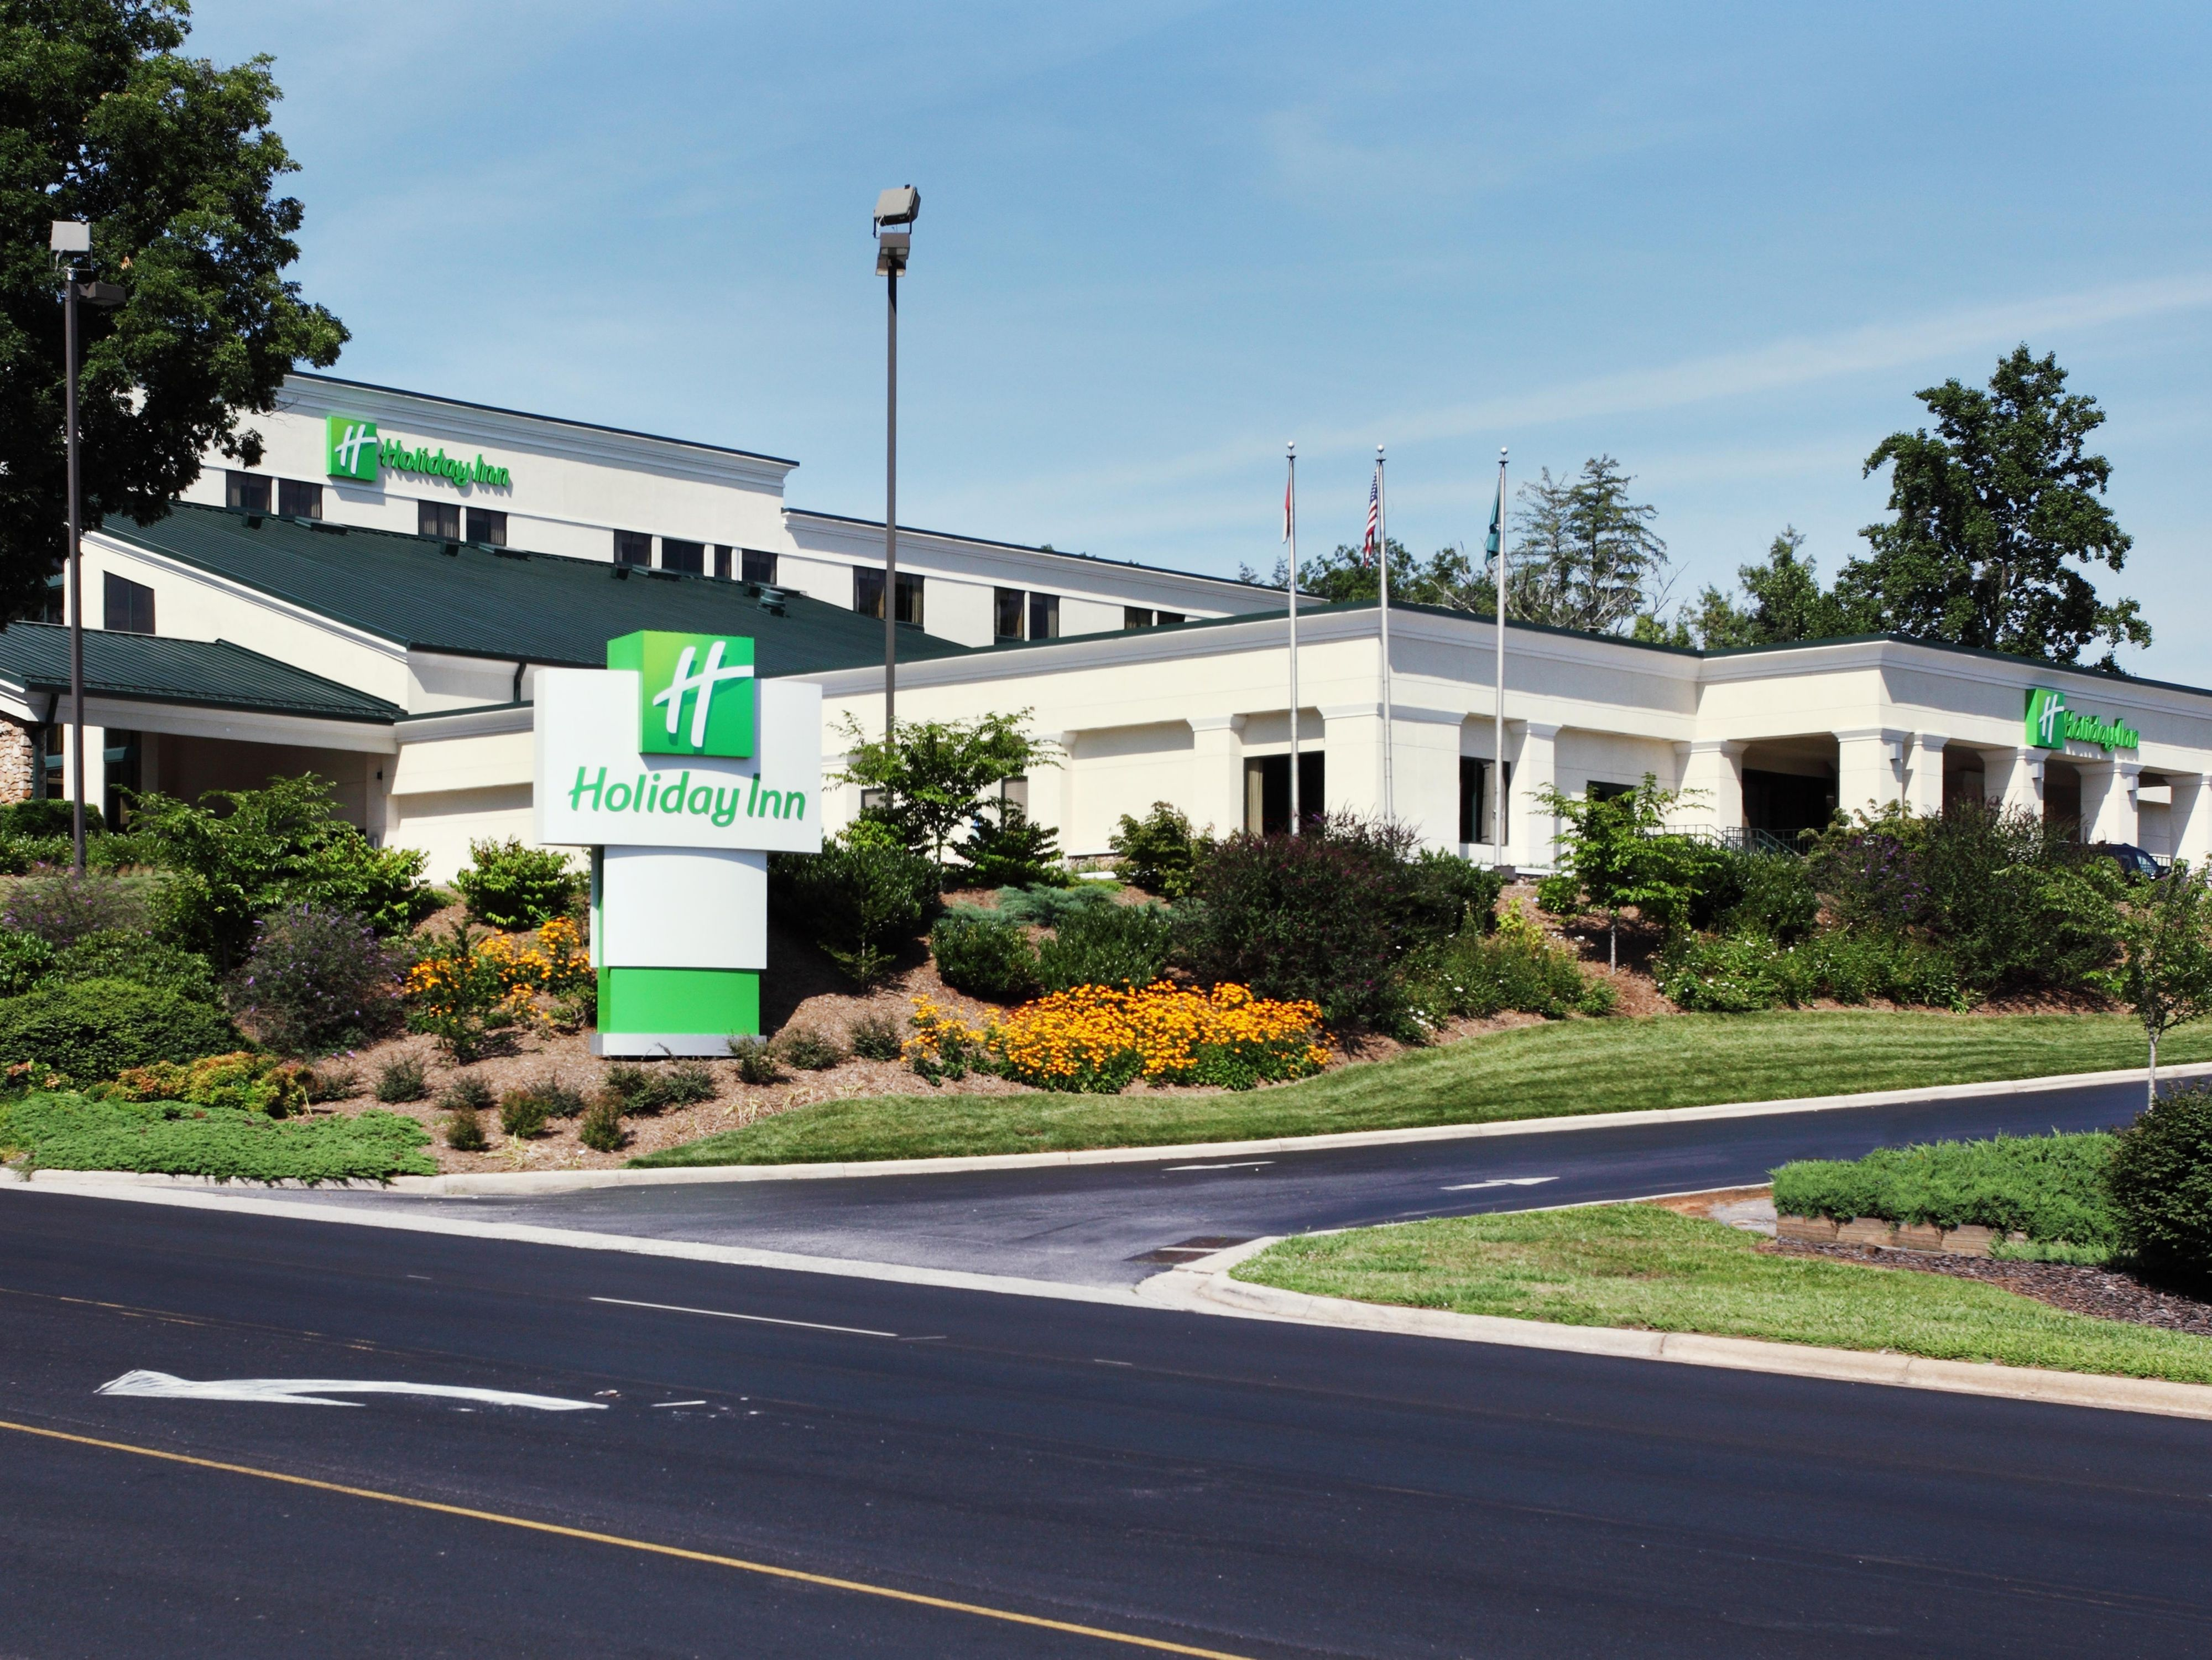 Welcome to Holiday Inn - Biltmore West